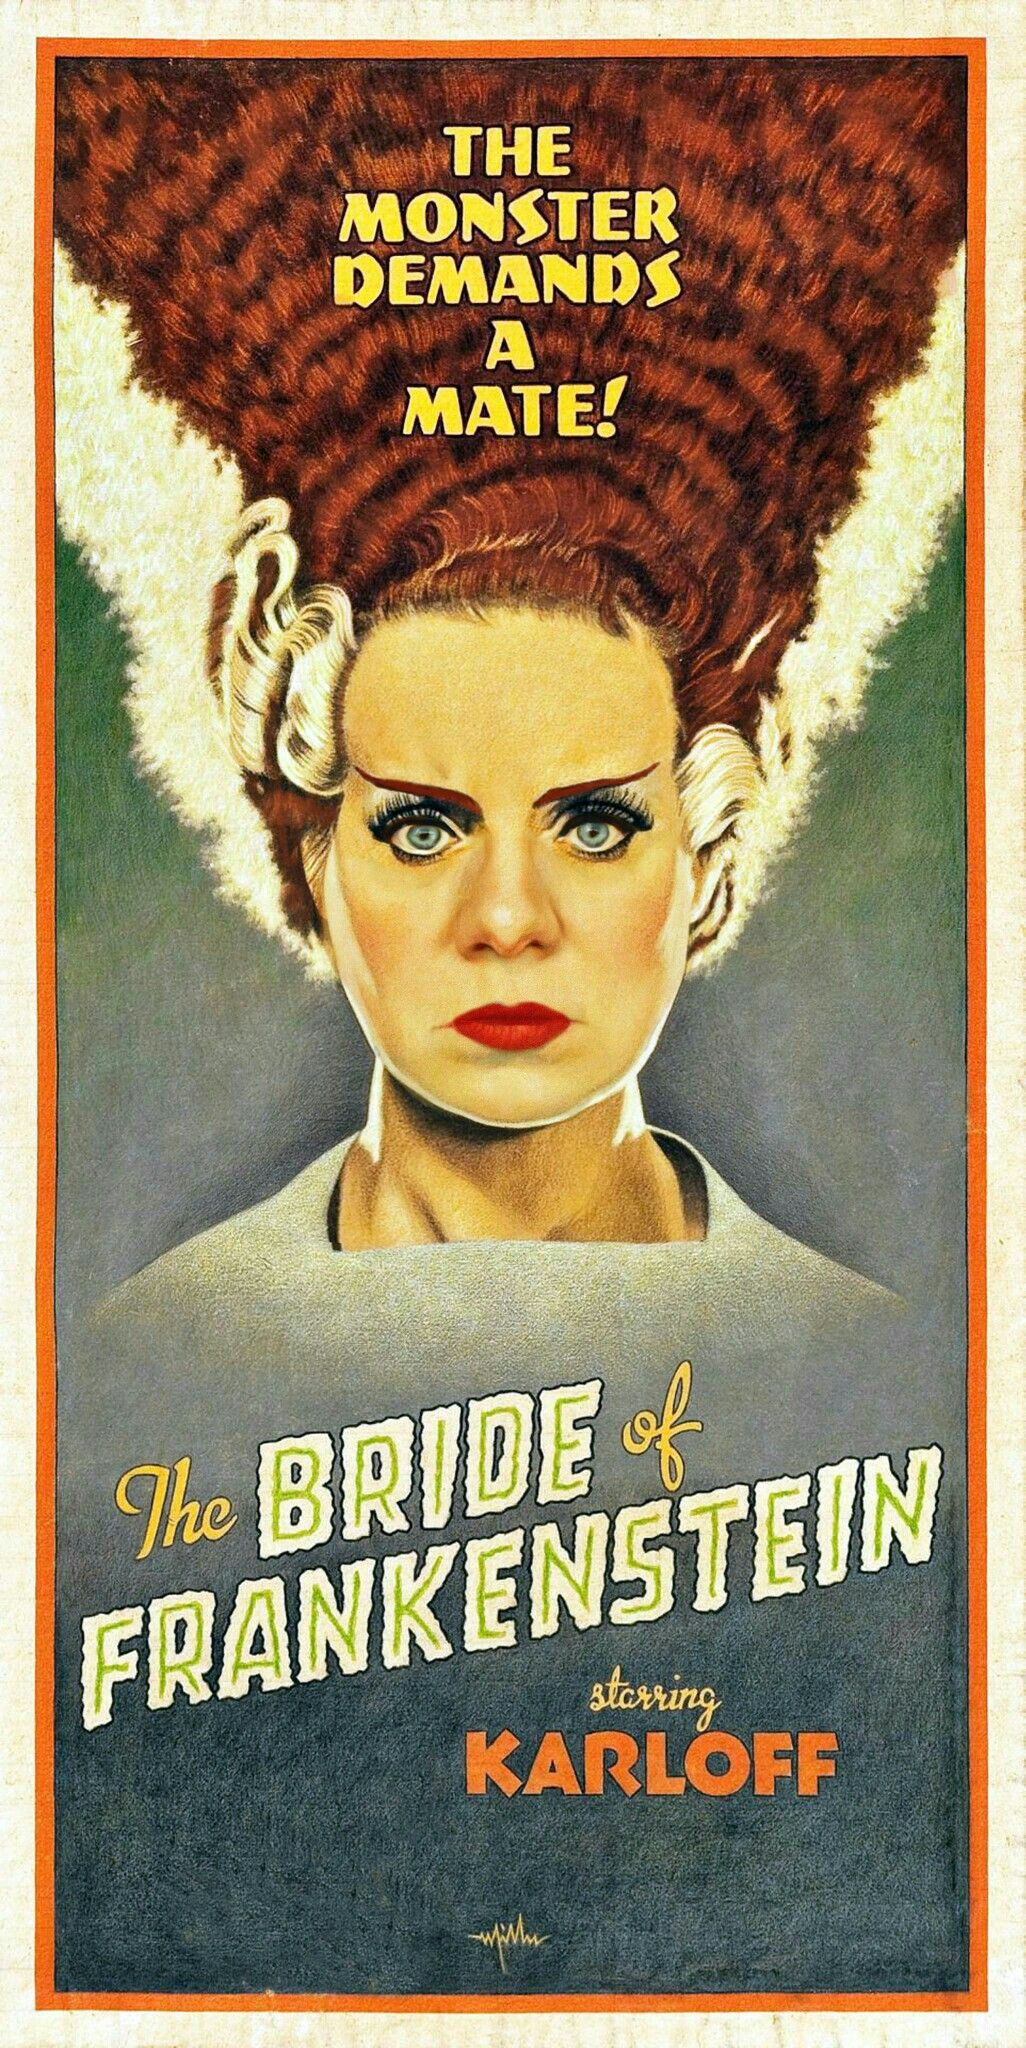 Bride of Frankenstein Classic Movie Poster or Canvas Art Print A3 A4 Sizes